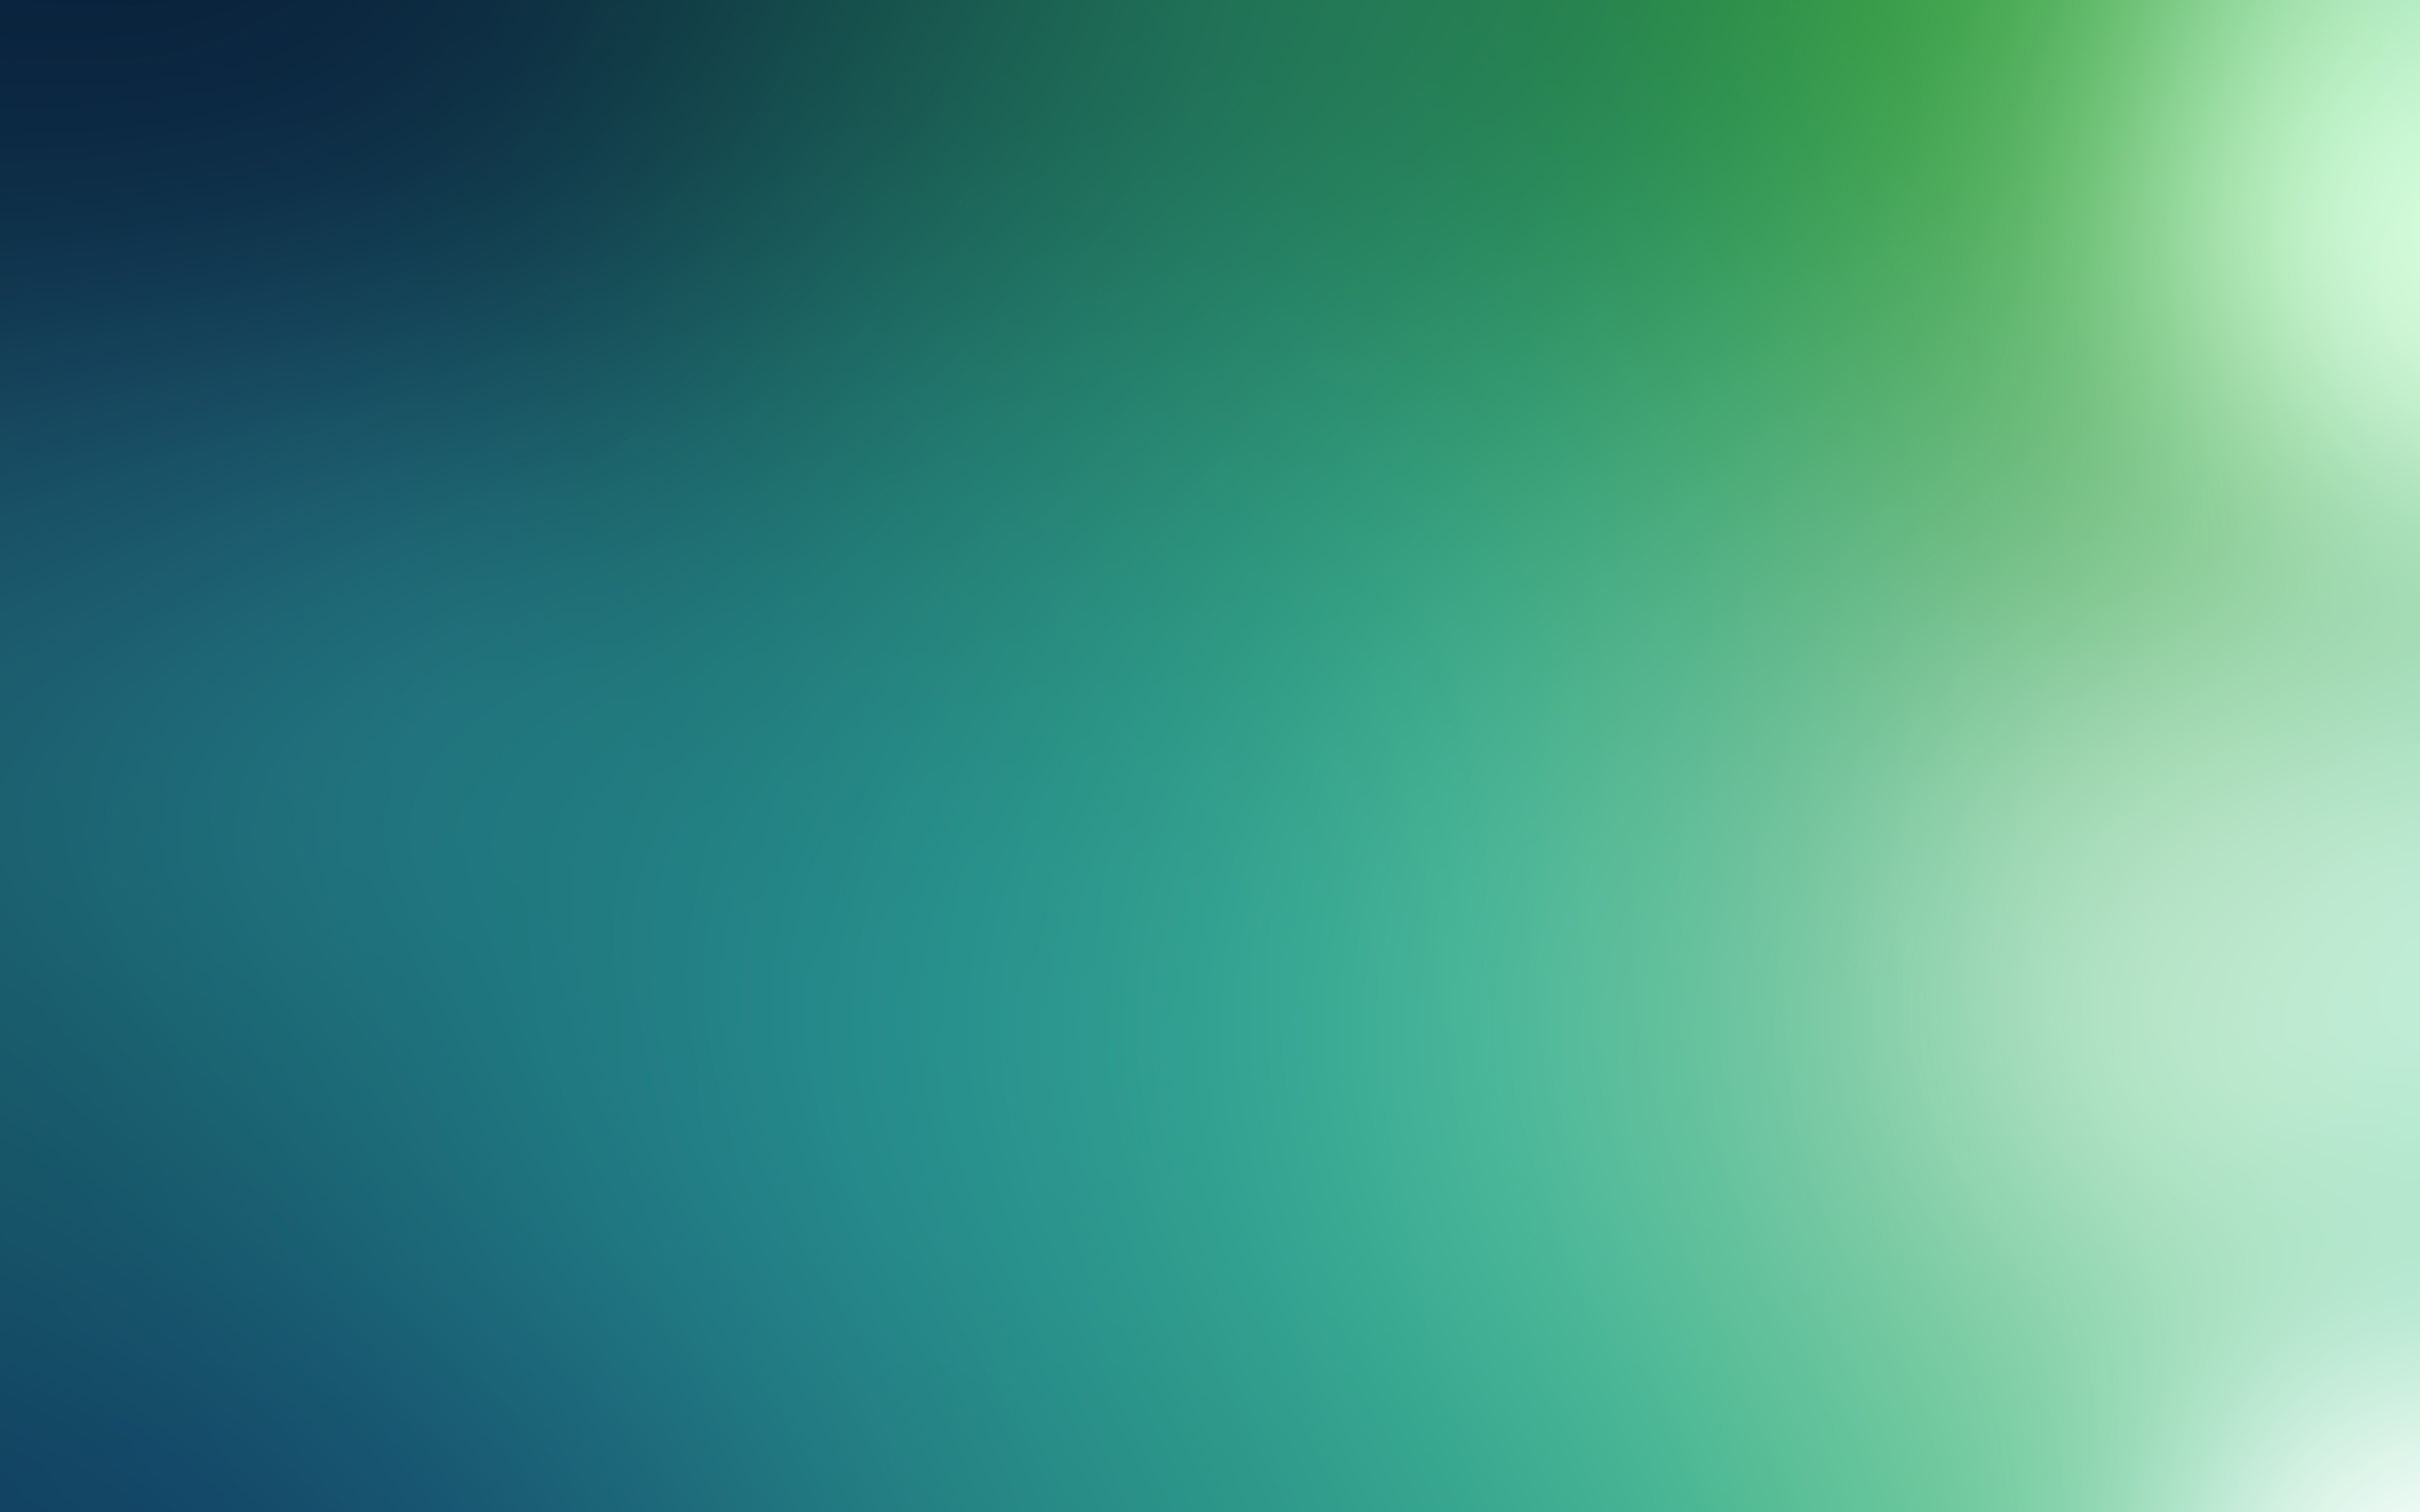 Cute Teal Wallpapers Green Blur Background Wallpapers